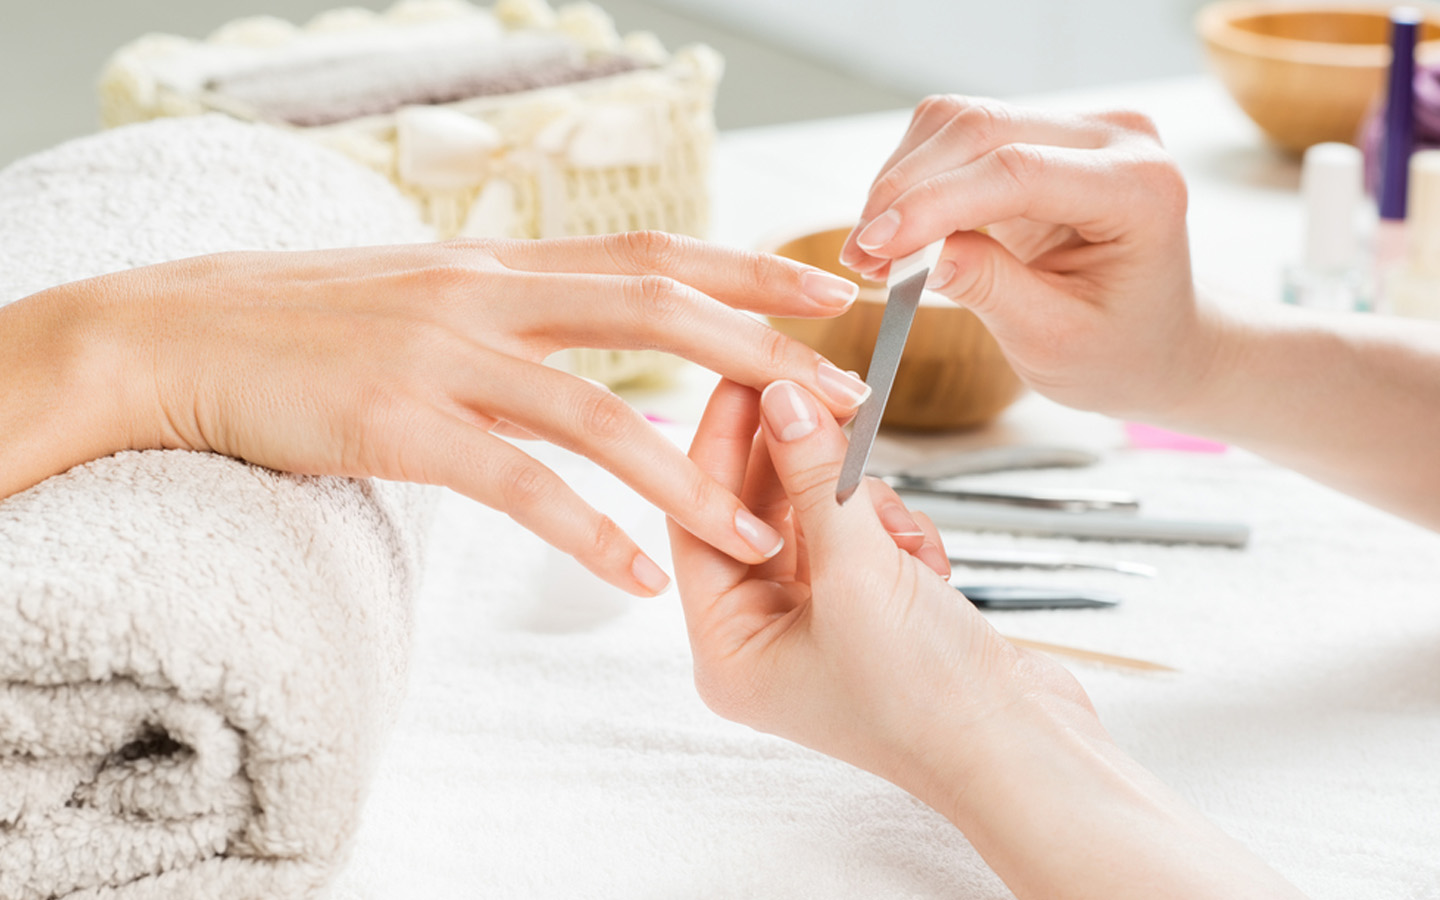 Manicure by a home service salon in Dubai